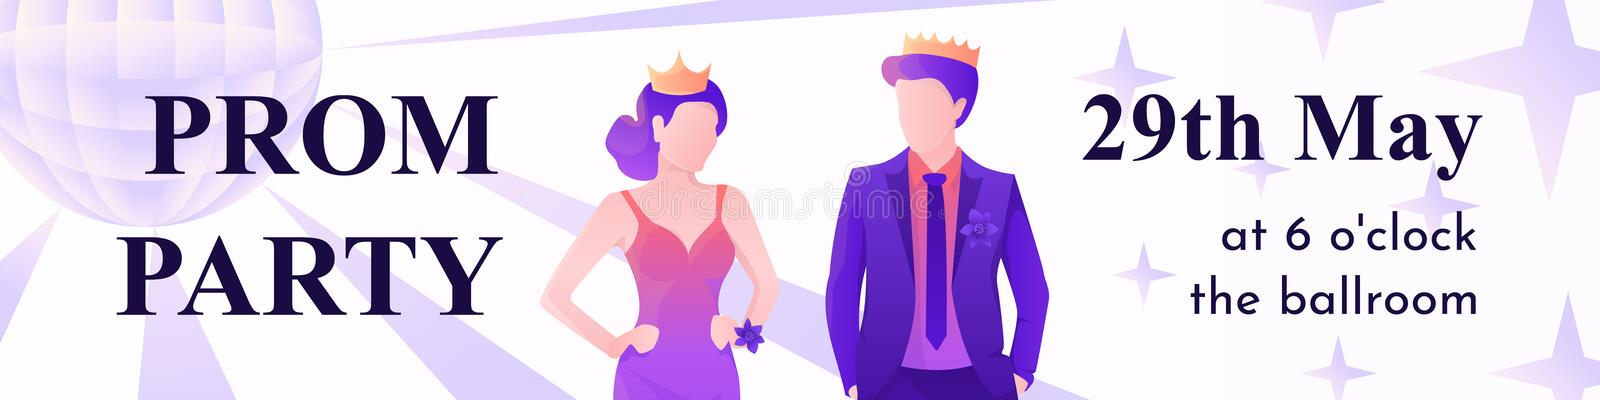 Young and beautiful prom king and queen royalty free illustration